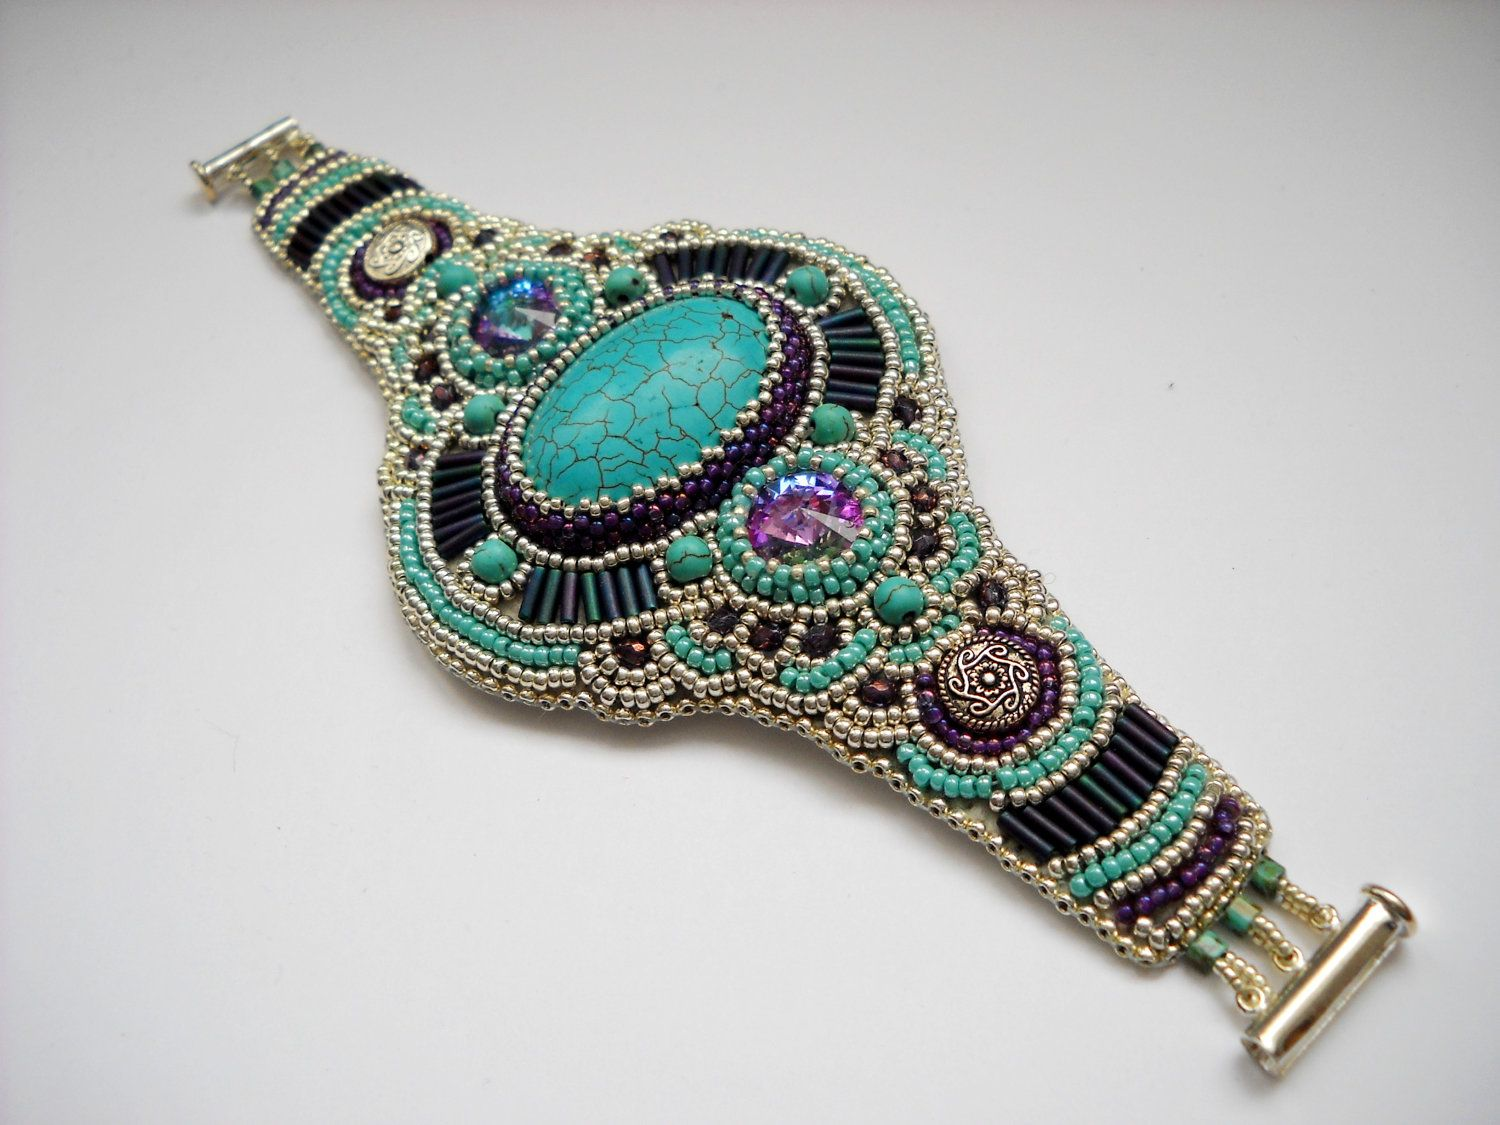 Girly cuff bead embroidery bracelet with turquoise